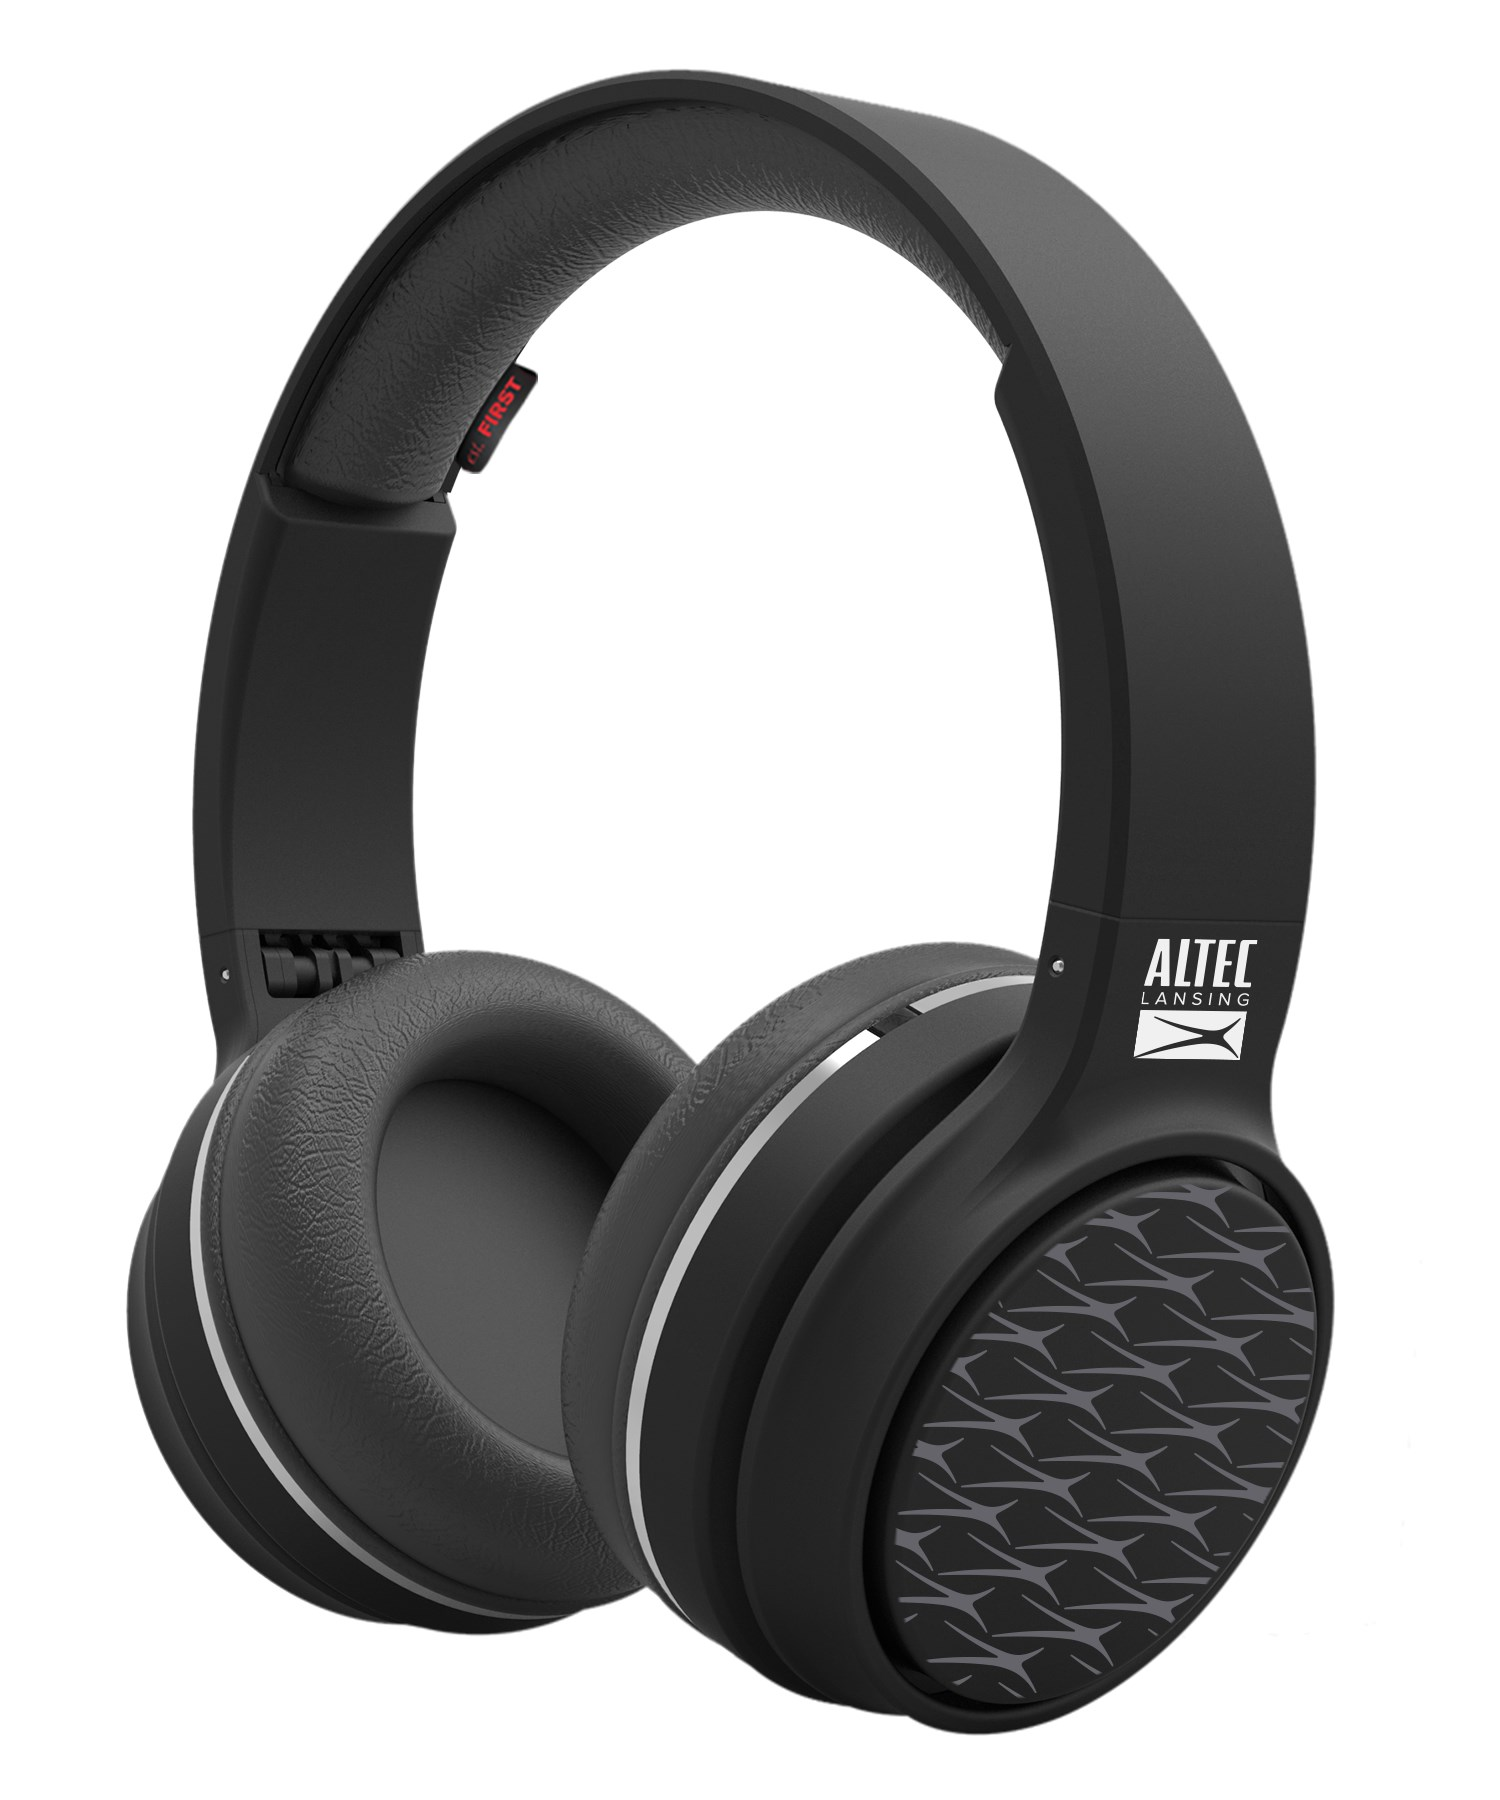 ALTEC LANSING bluetooth headphones Ring 'n' Go play&party Μαύρα